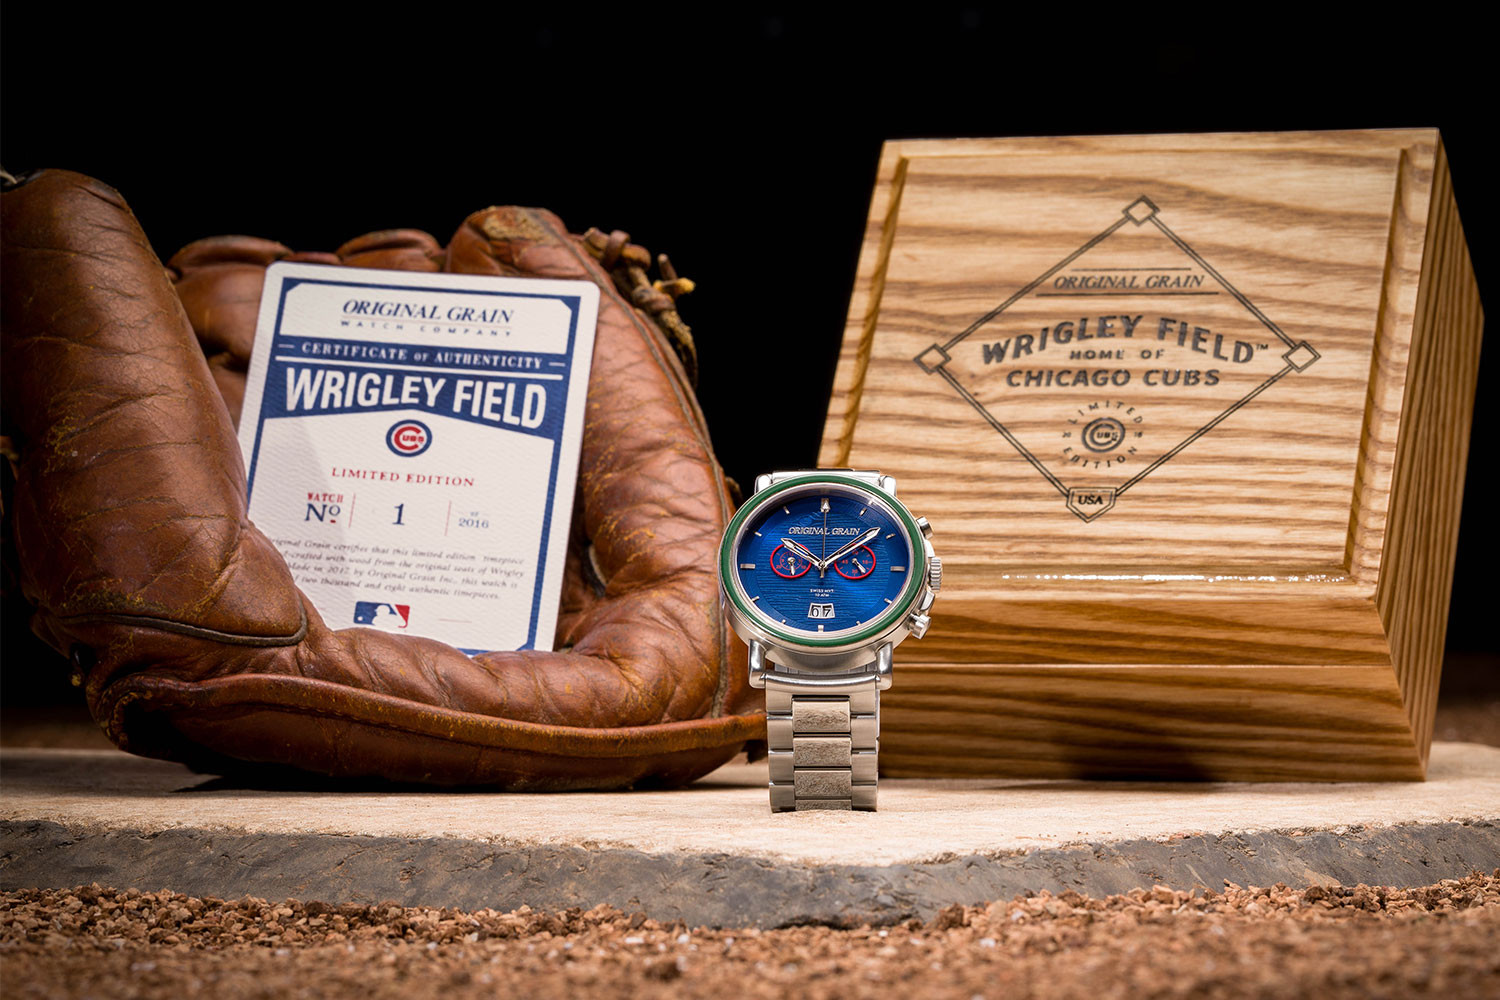 Wrigley Field Chrono watch with collectible box and baseball glove